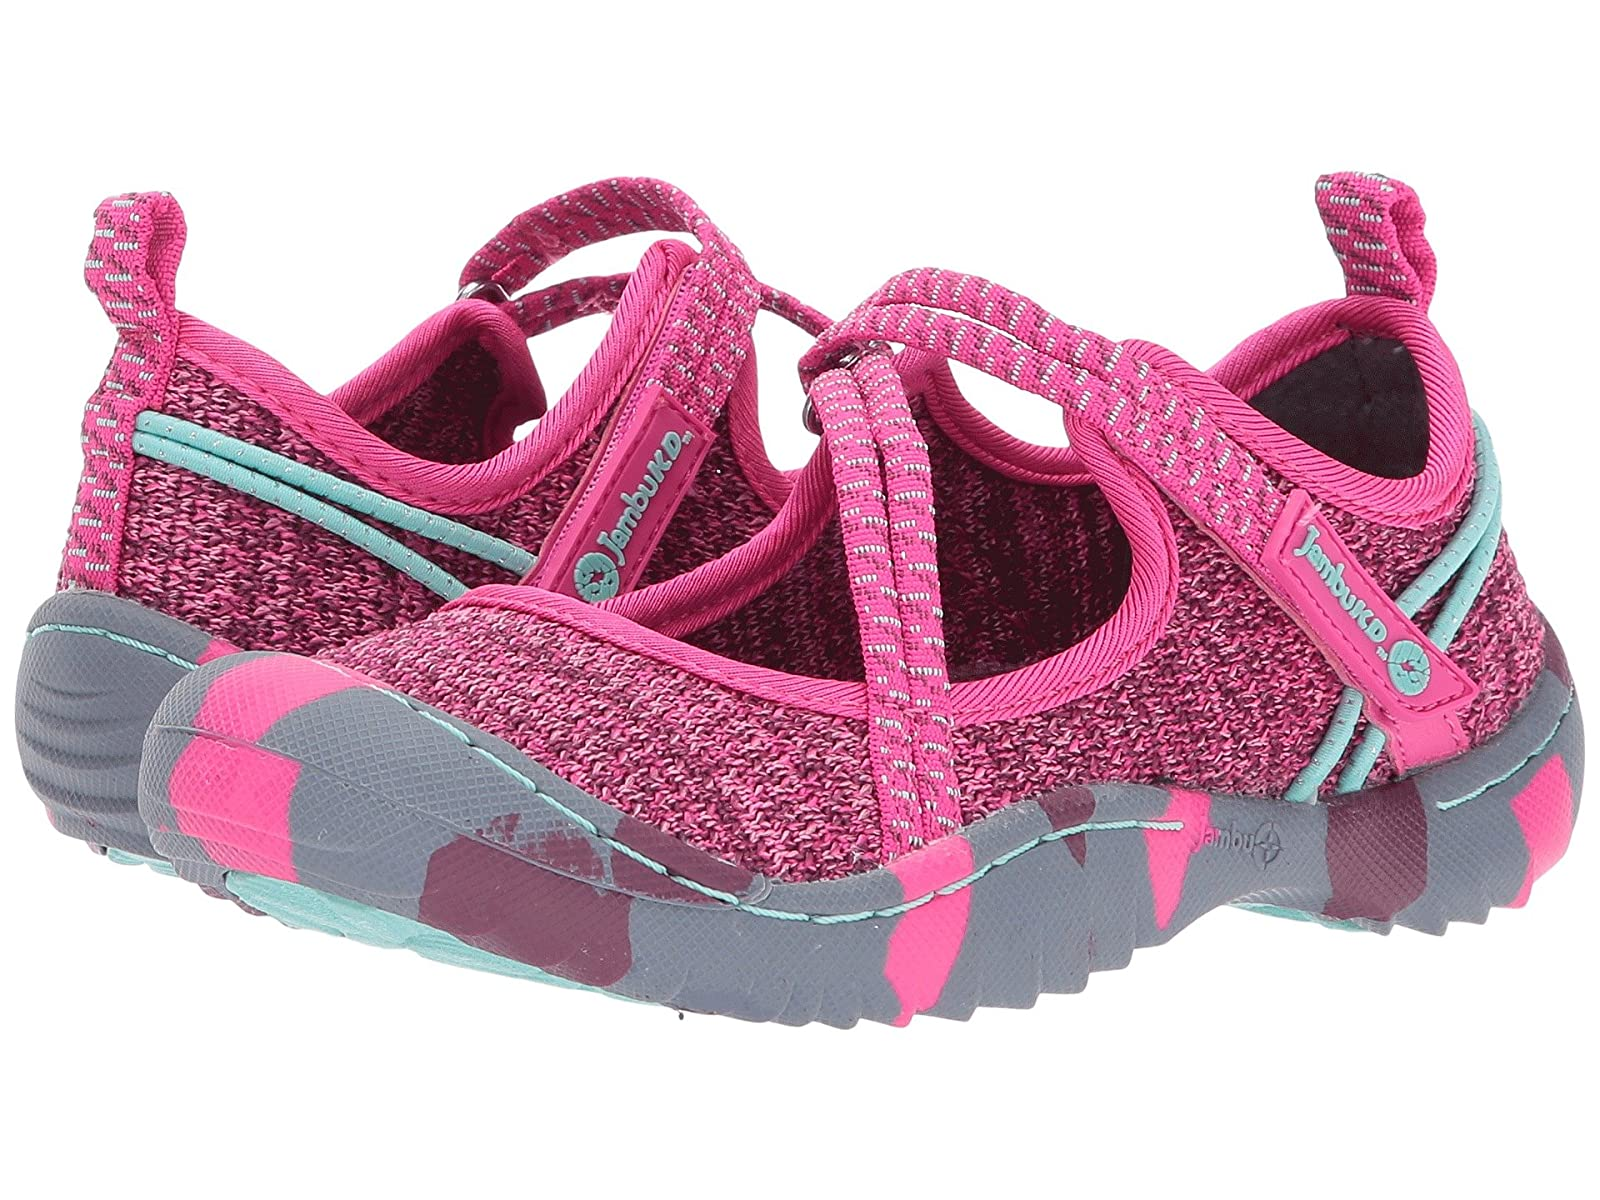 Jambu Kids Kalei (Toddler/Little Kid/Big Kid)Atmospheric grades have affordable shoes